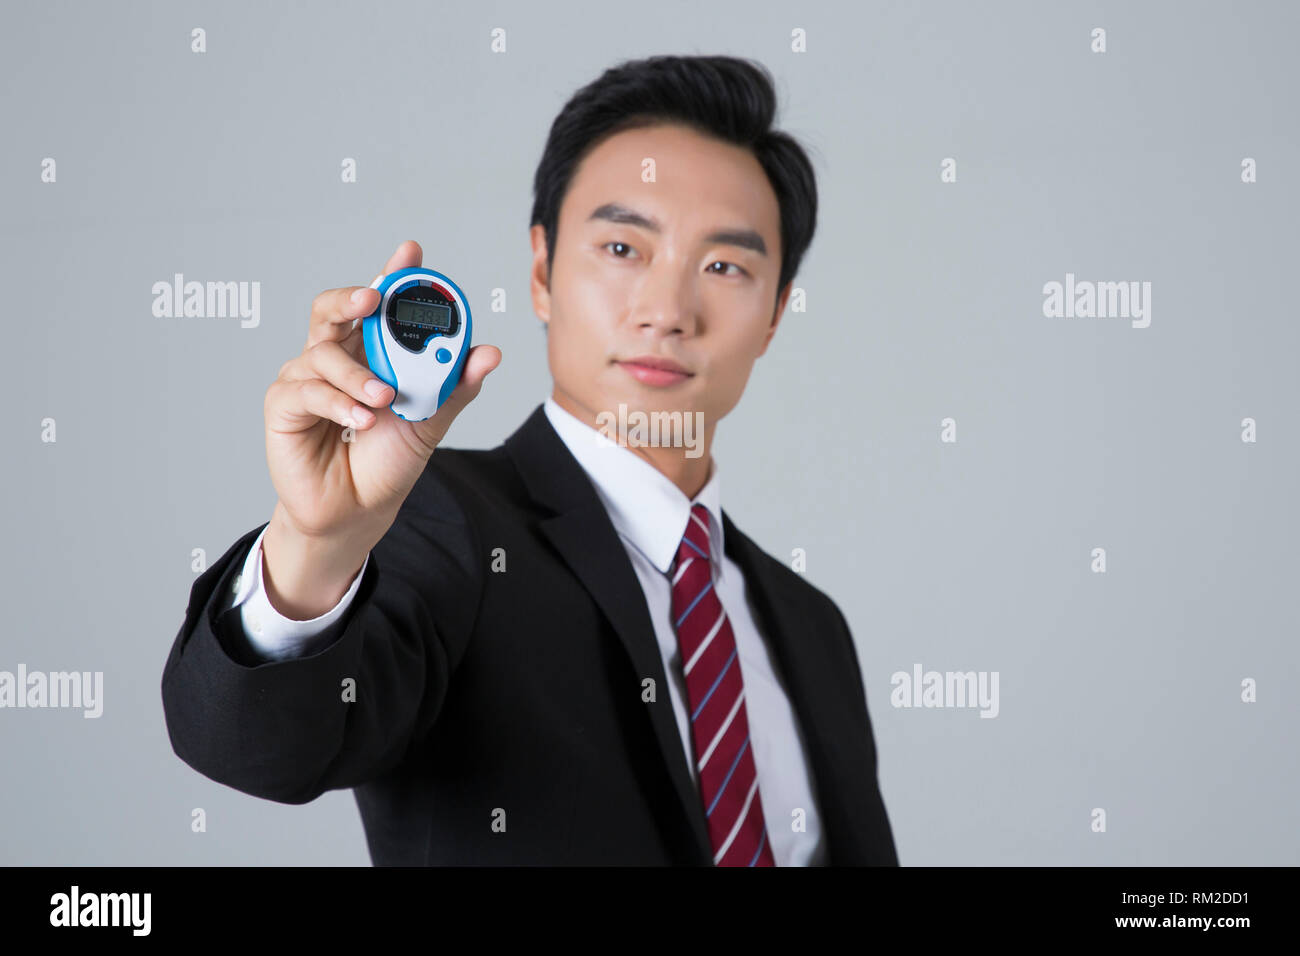 Young businessman concept photo. 060 - Stock Image